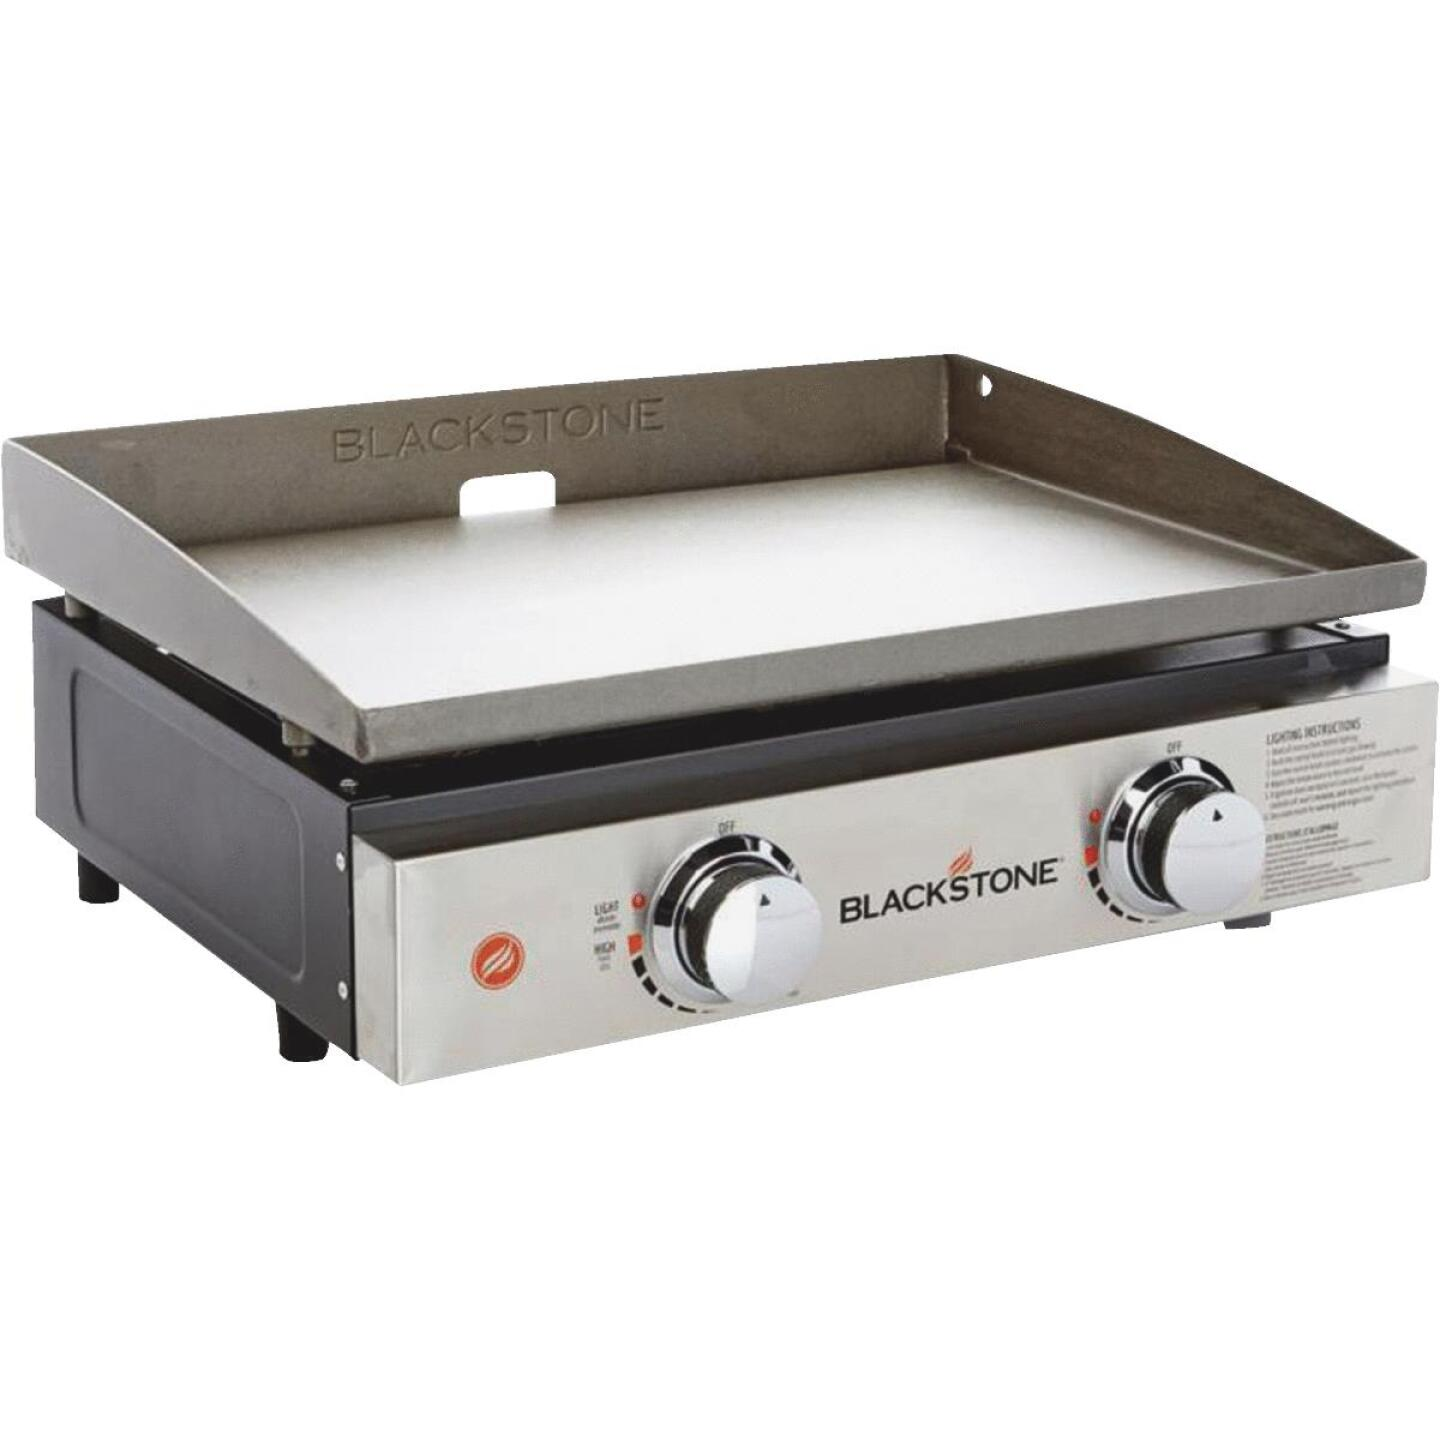 Blackstone Culinary Series 22 361 Sq. In. Table Top Gas Griddle with Hood Image 1